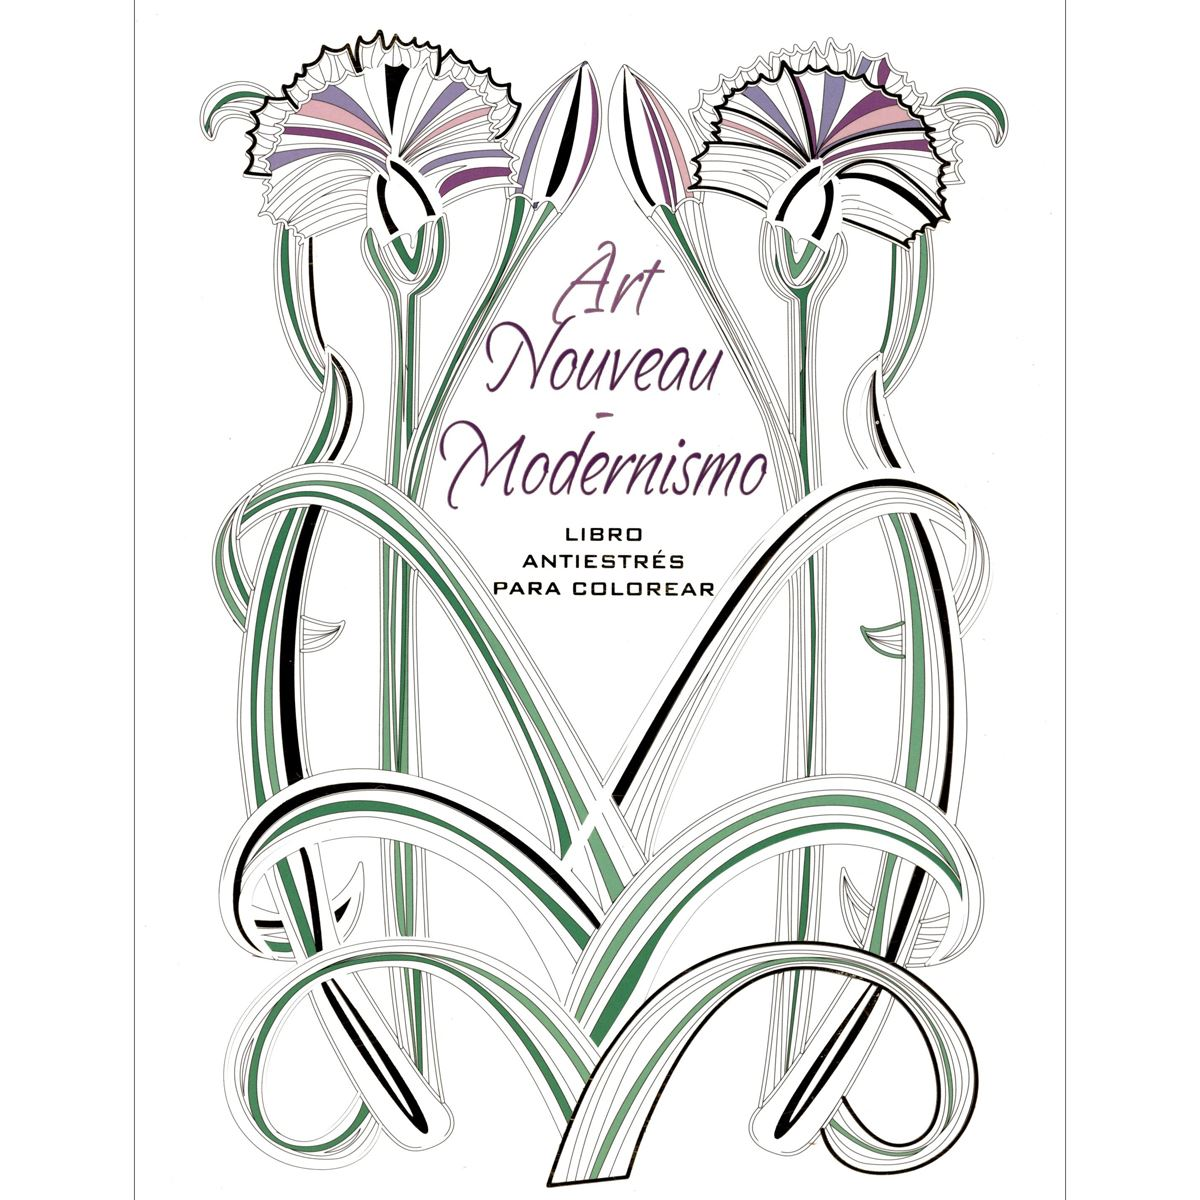 Art nouveau modernismo Libro - Sanborns